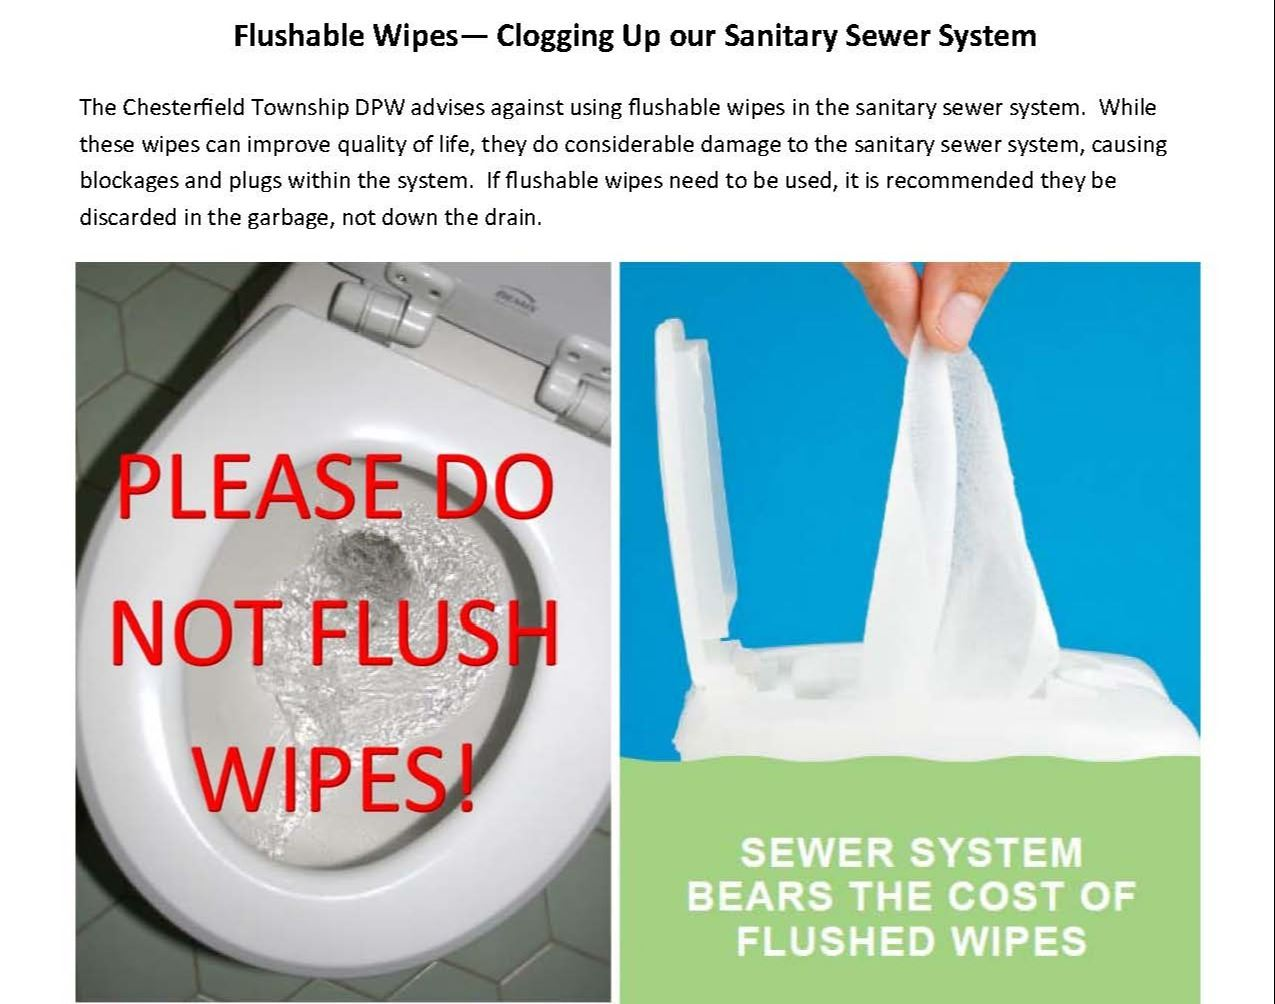 Flushable Wipes Page